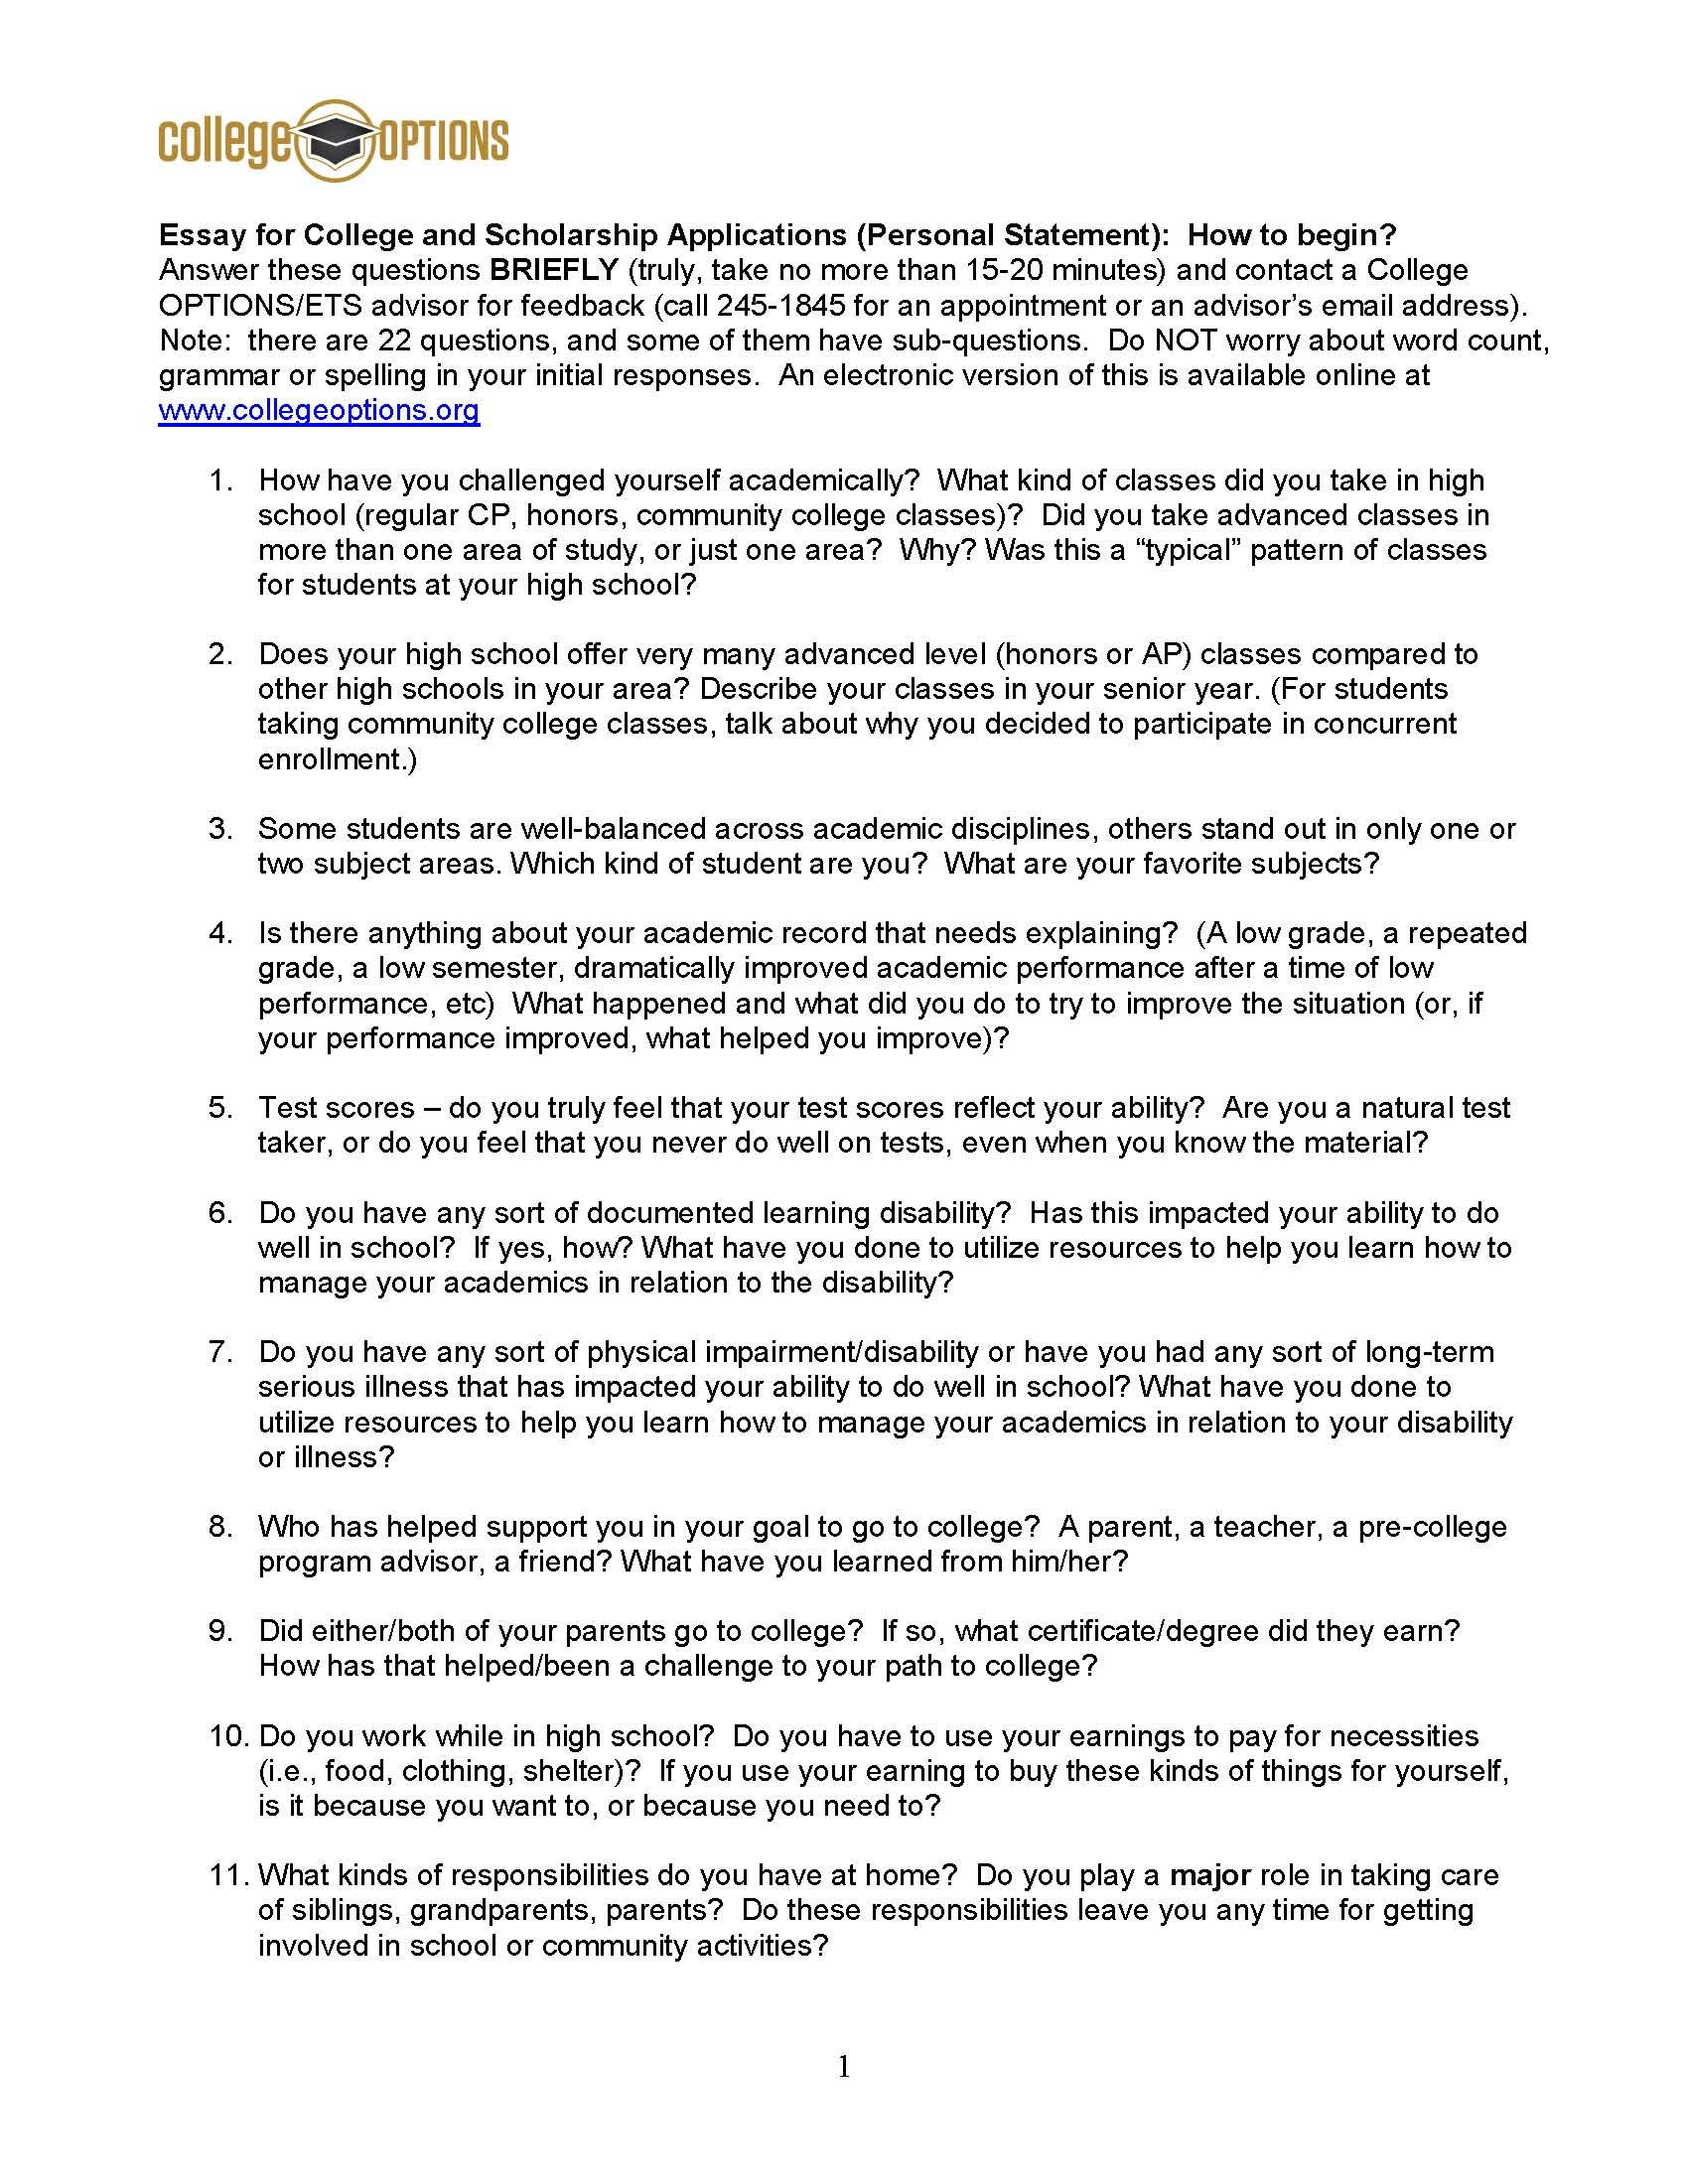 college options tips for writing your scholarship application  college options tips for writing your scholarship application essays page 1 collegeoptions